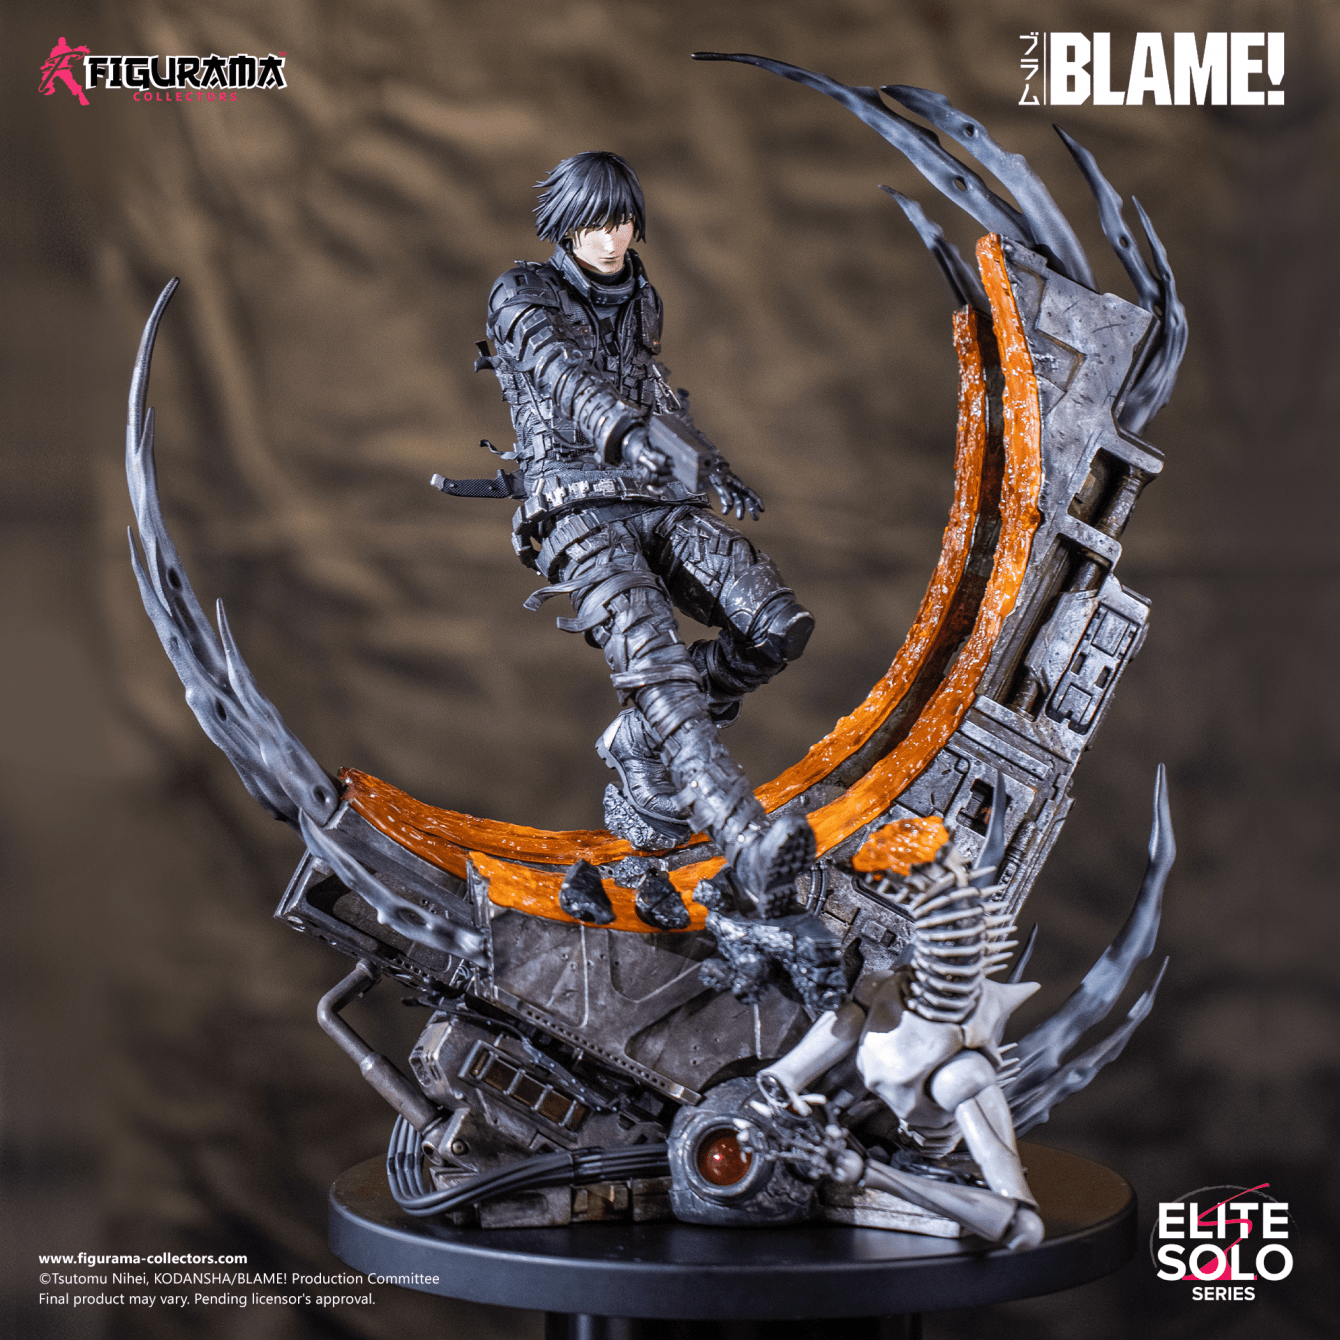 Blame!  Killy Elite Solo Statue: Preorders open on March 27th